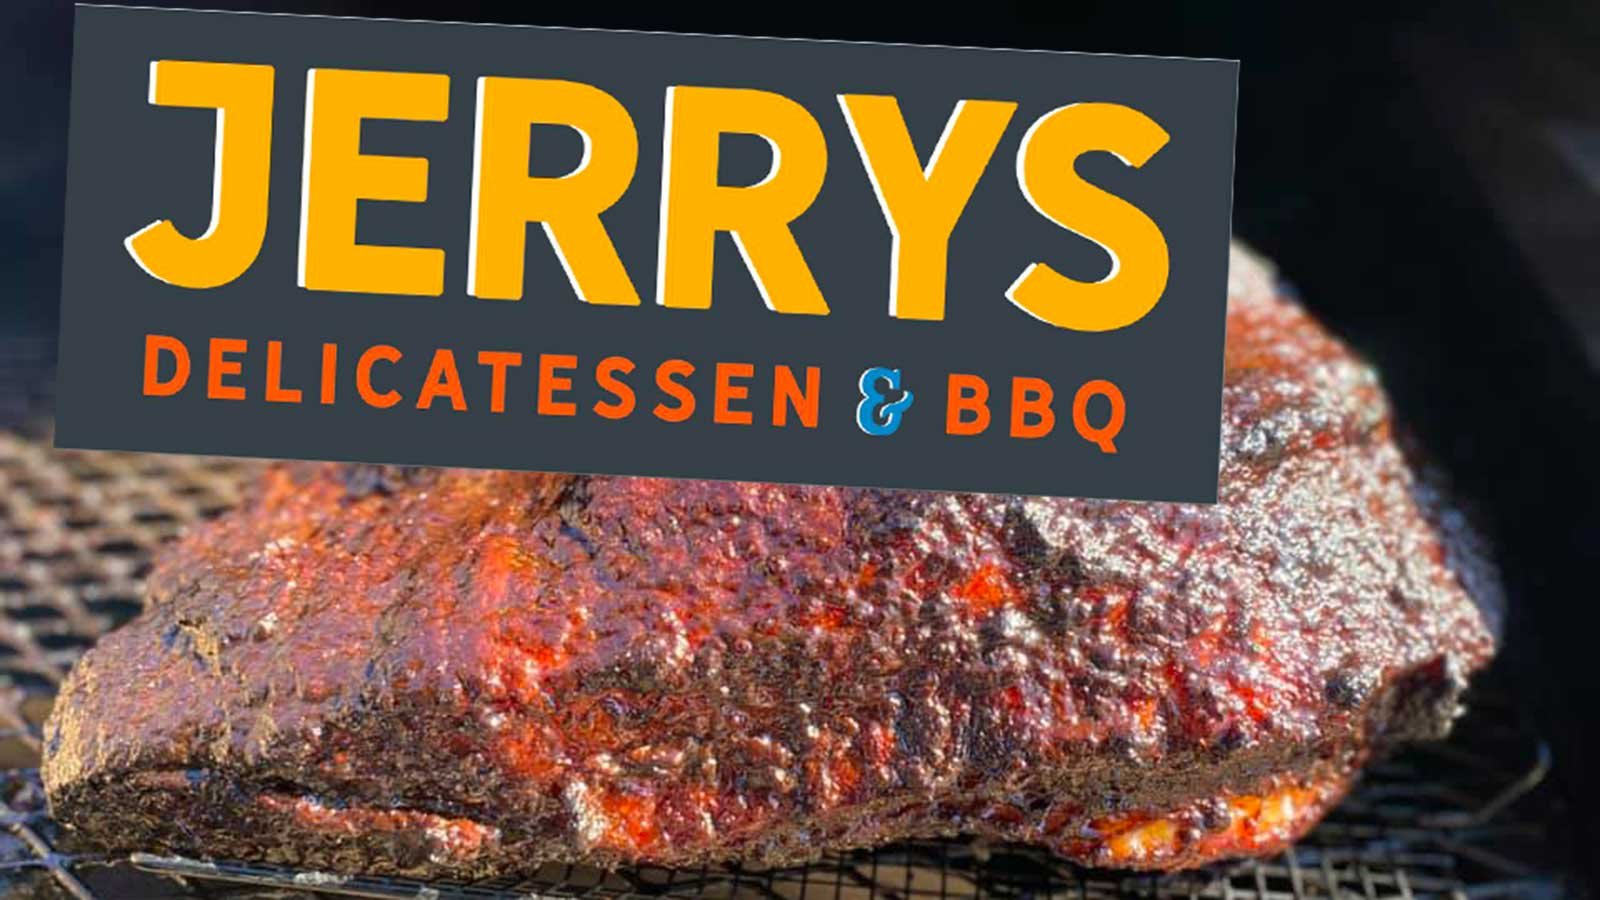 Jerry's Delicatessen & BBQ